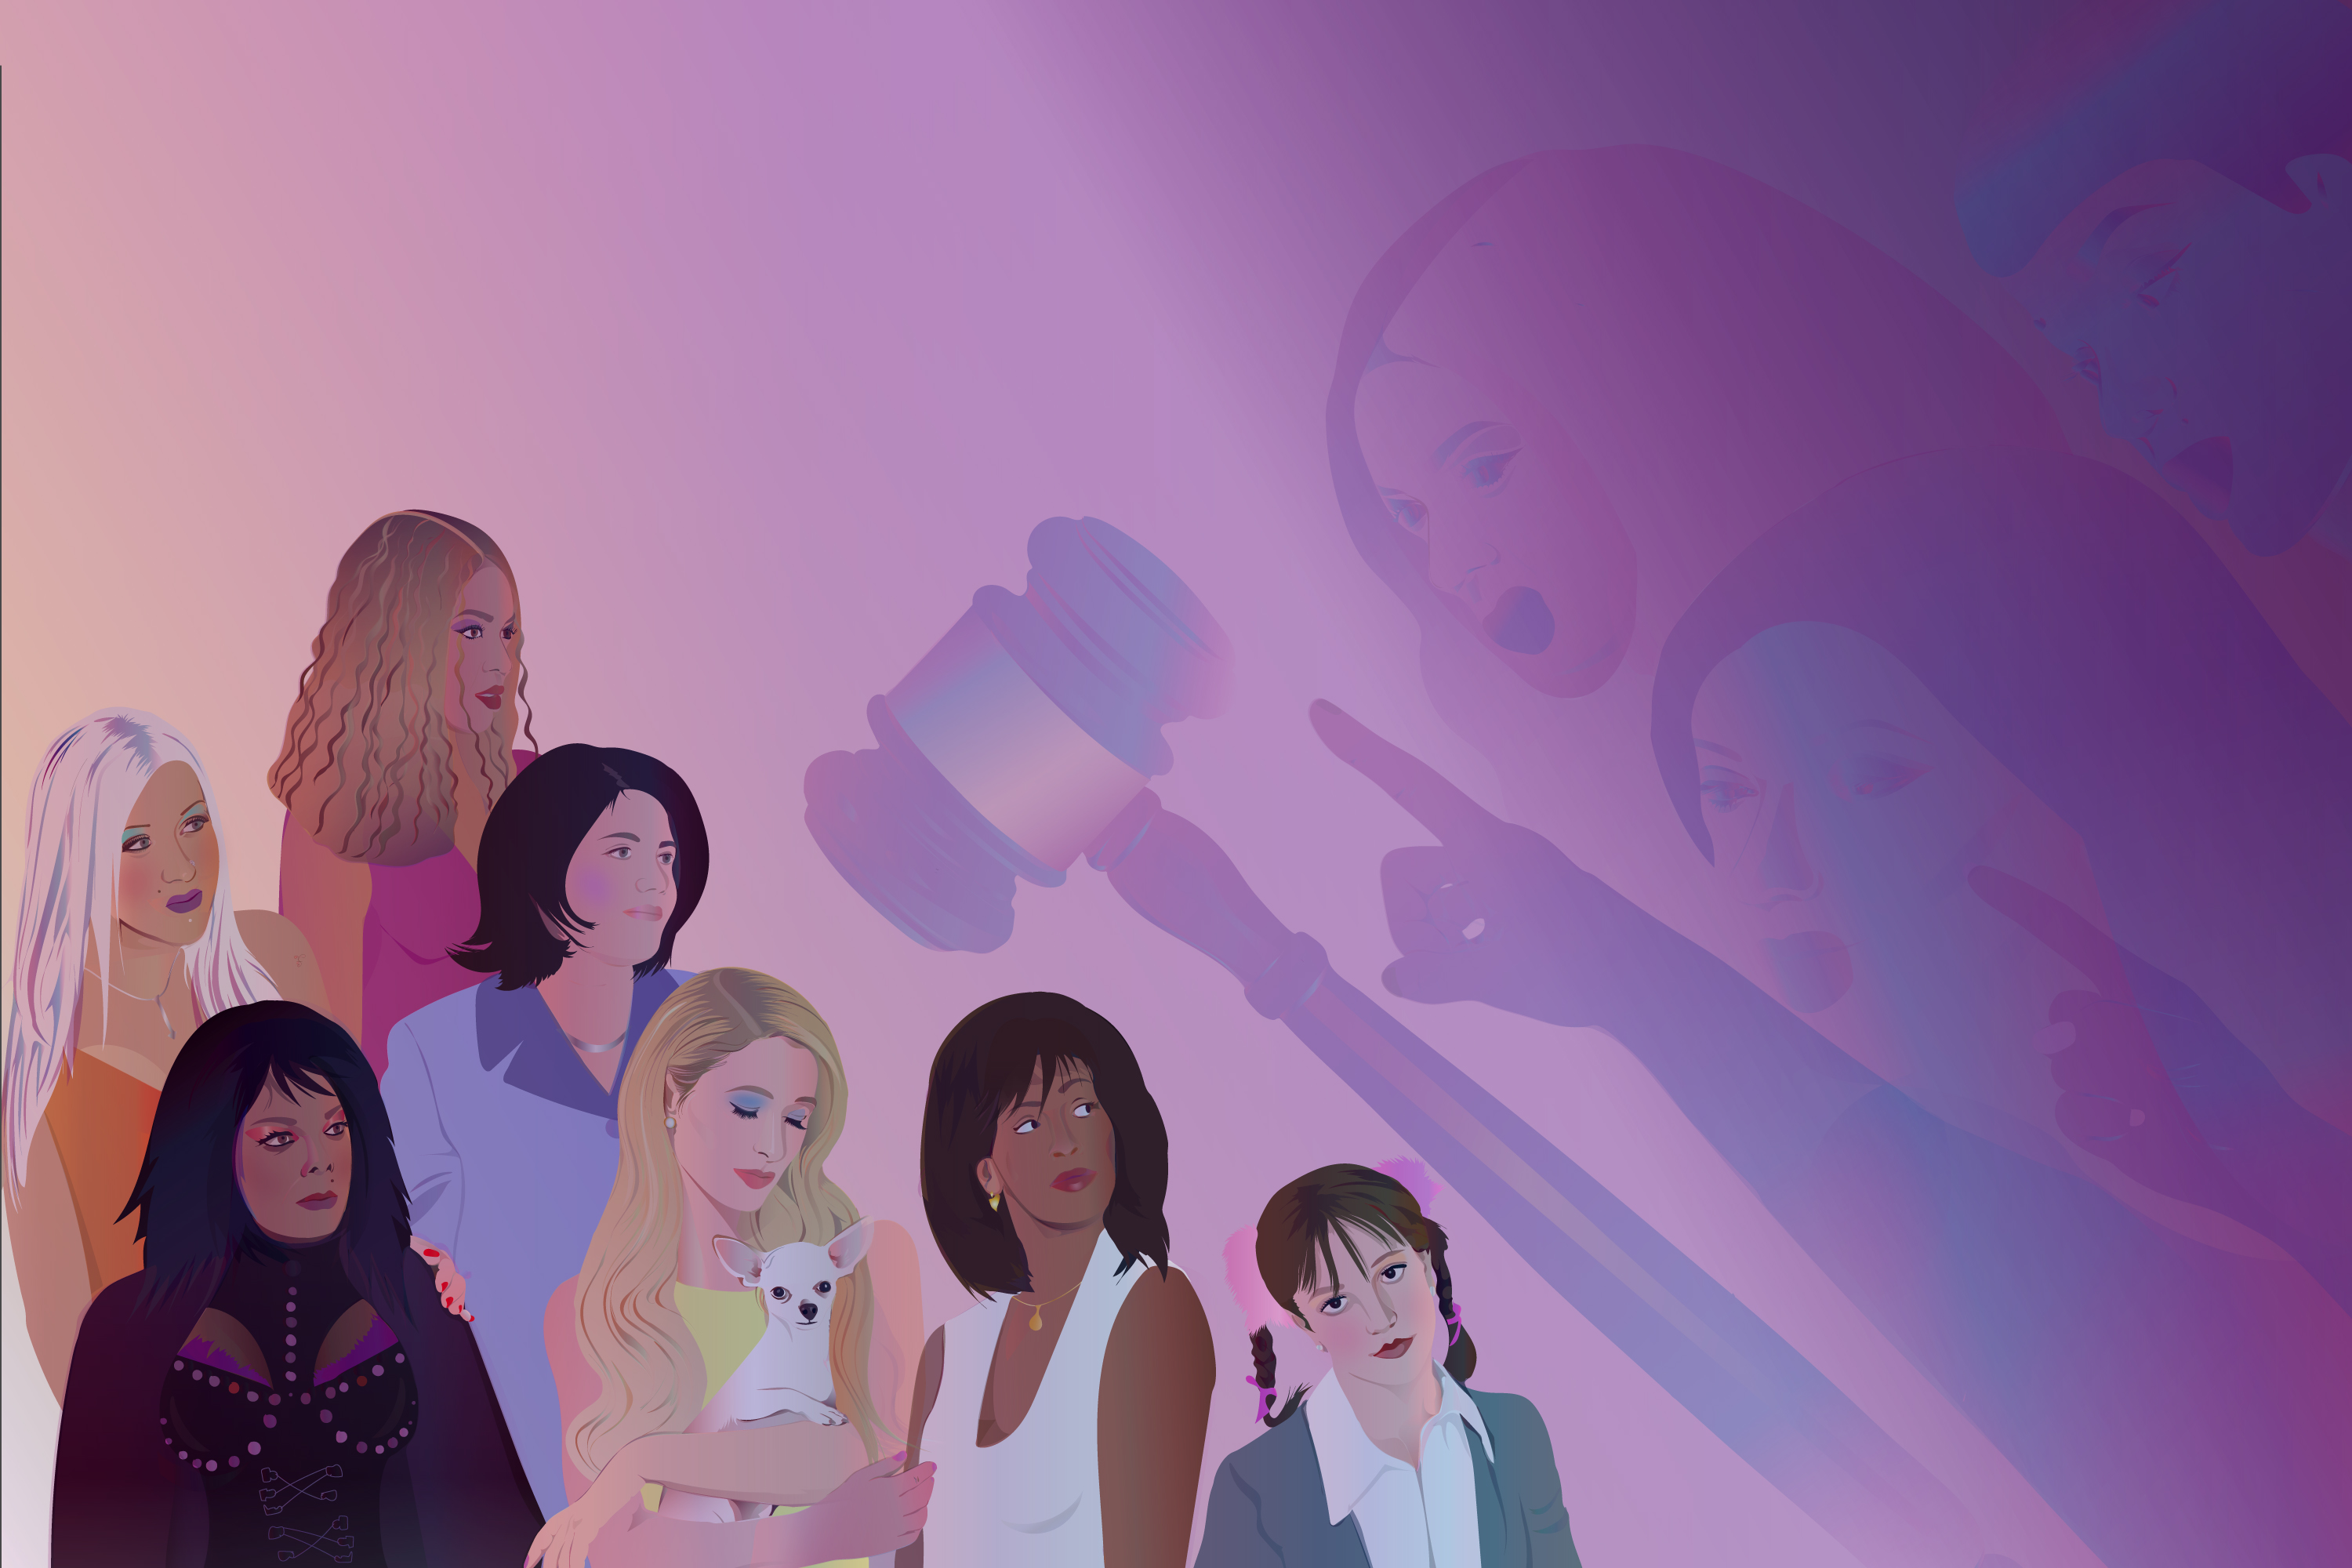 An illustration showing multiple women under a looming judge's gavel and a pointing finger.